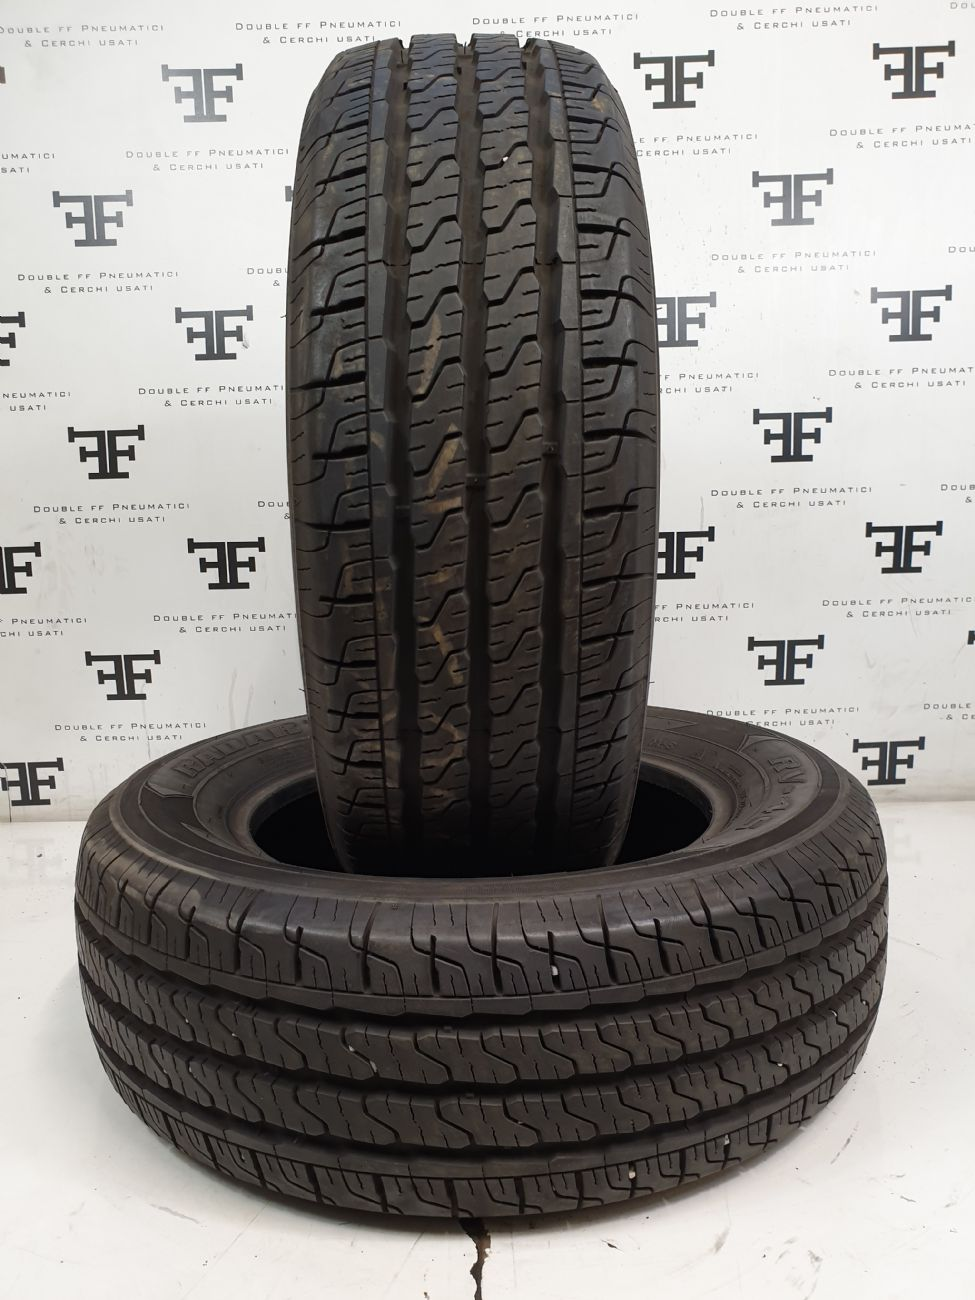 215/65 R16C 109/107 T RADAR (MICHELIN) RV-45 M+S DEMONTE